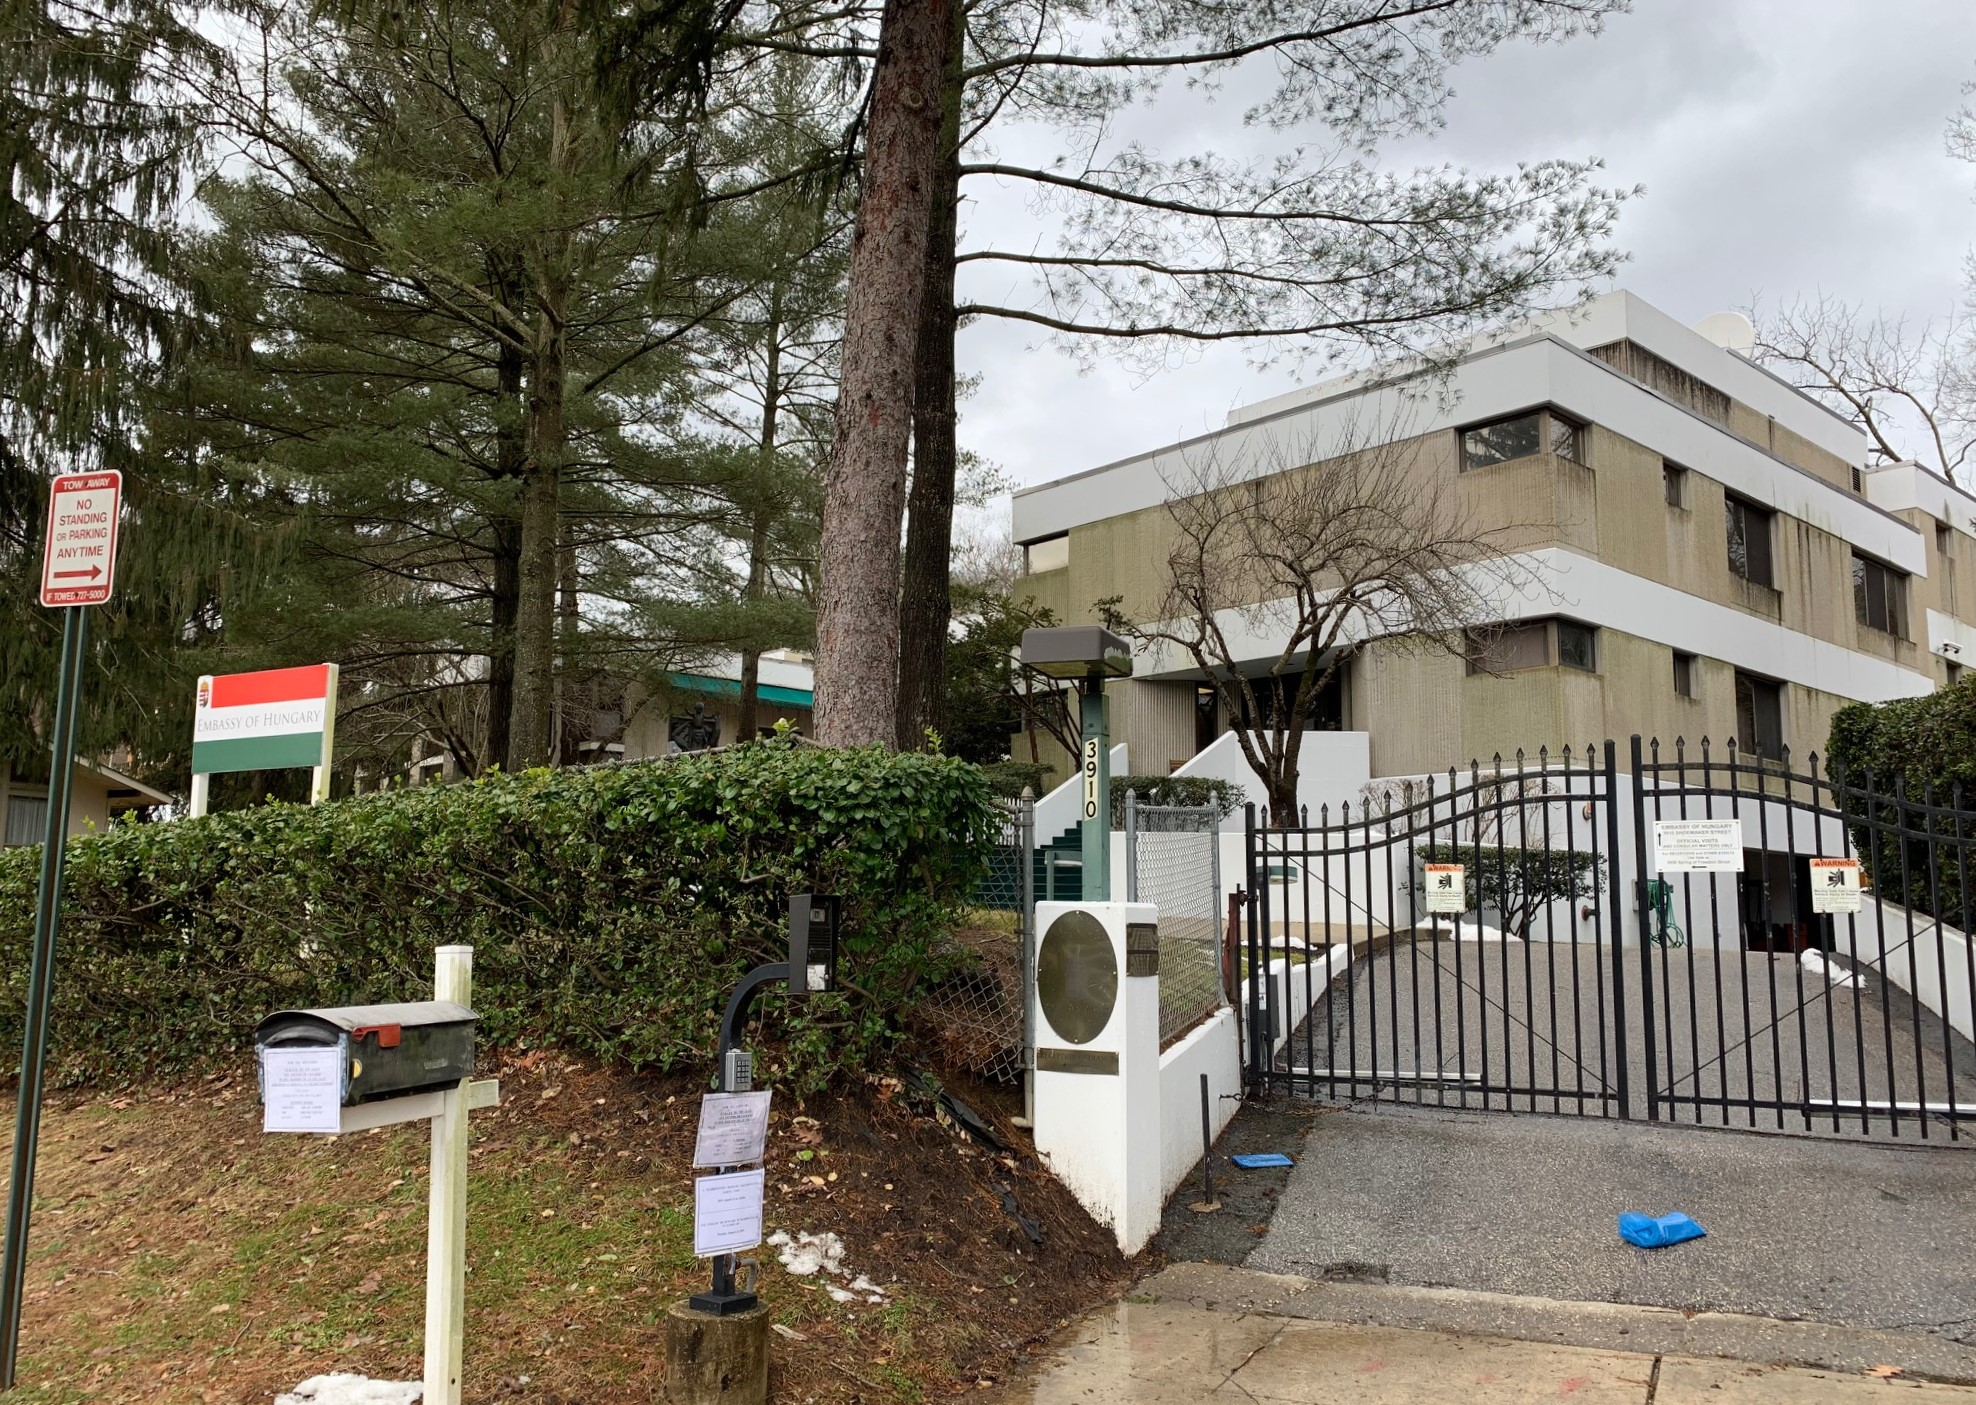 Real Estate and Homes For Sale Near the Embassy of Hungary in Washington, DC. Artyom Shmatko Realtor